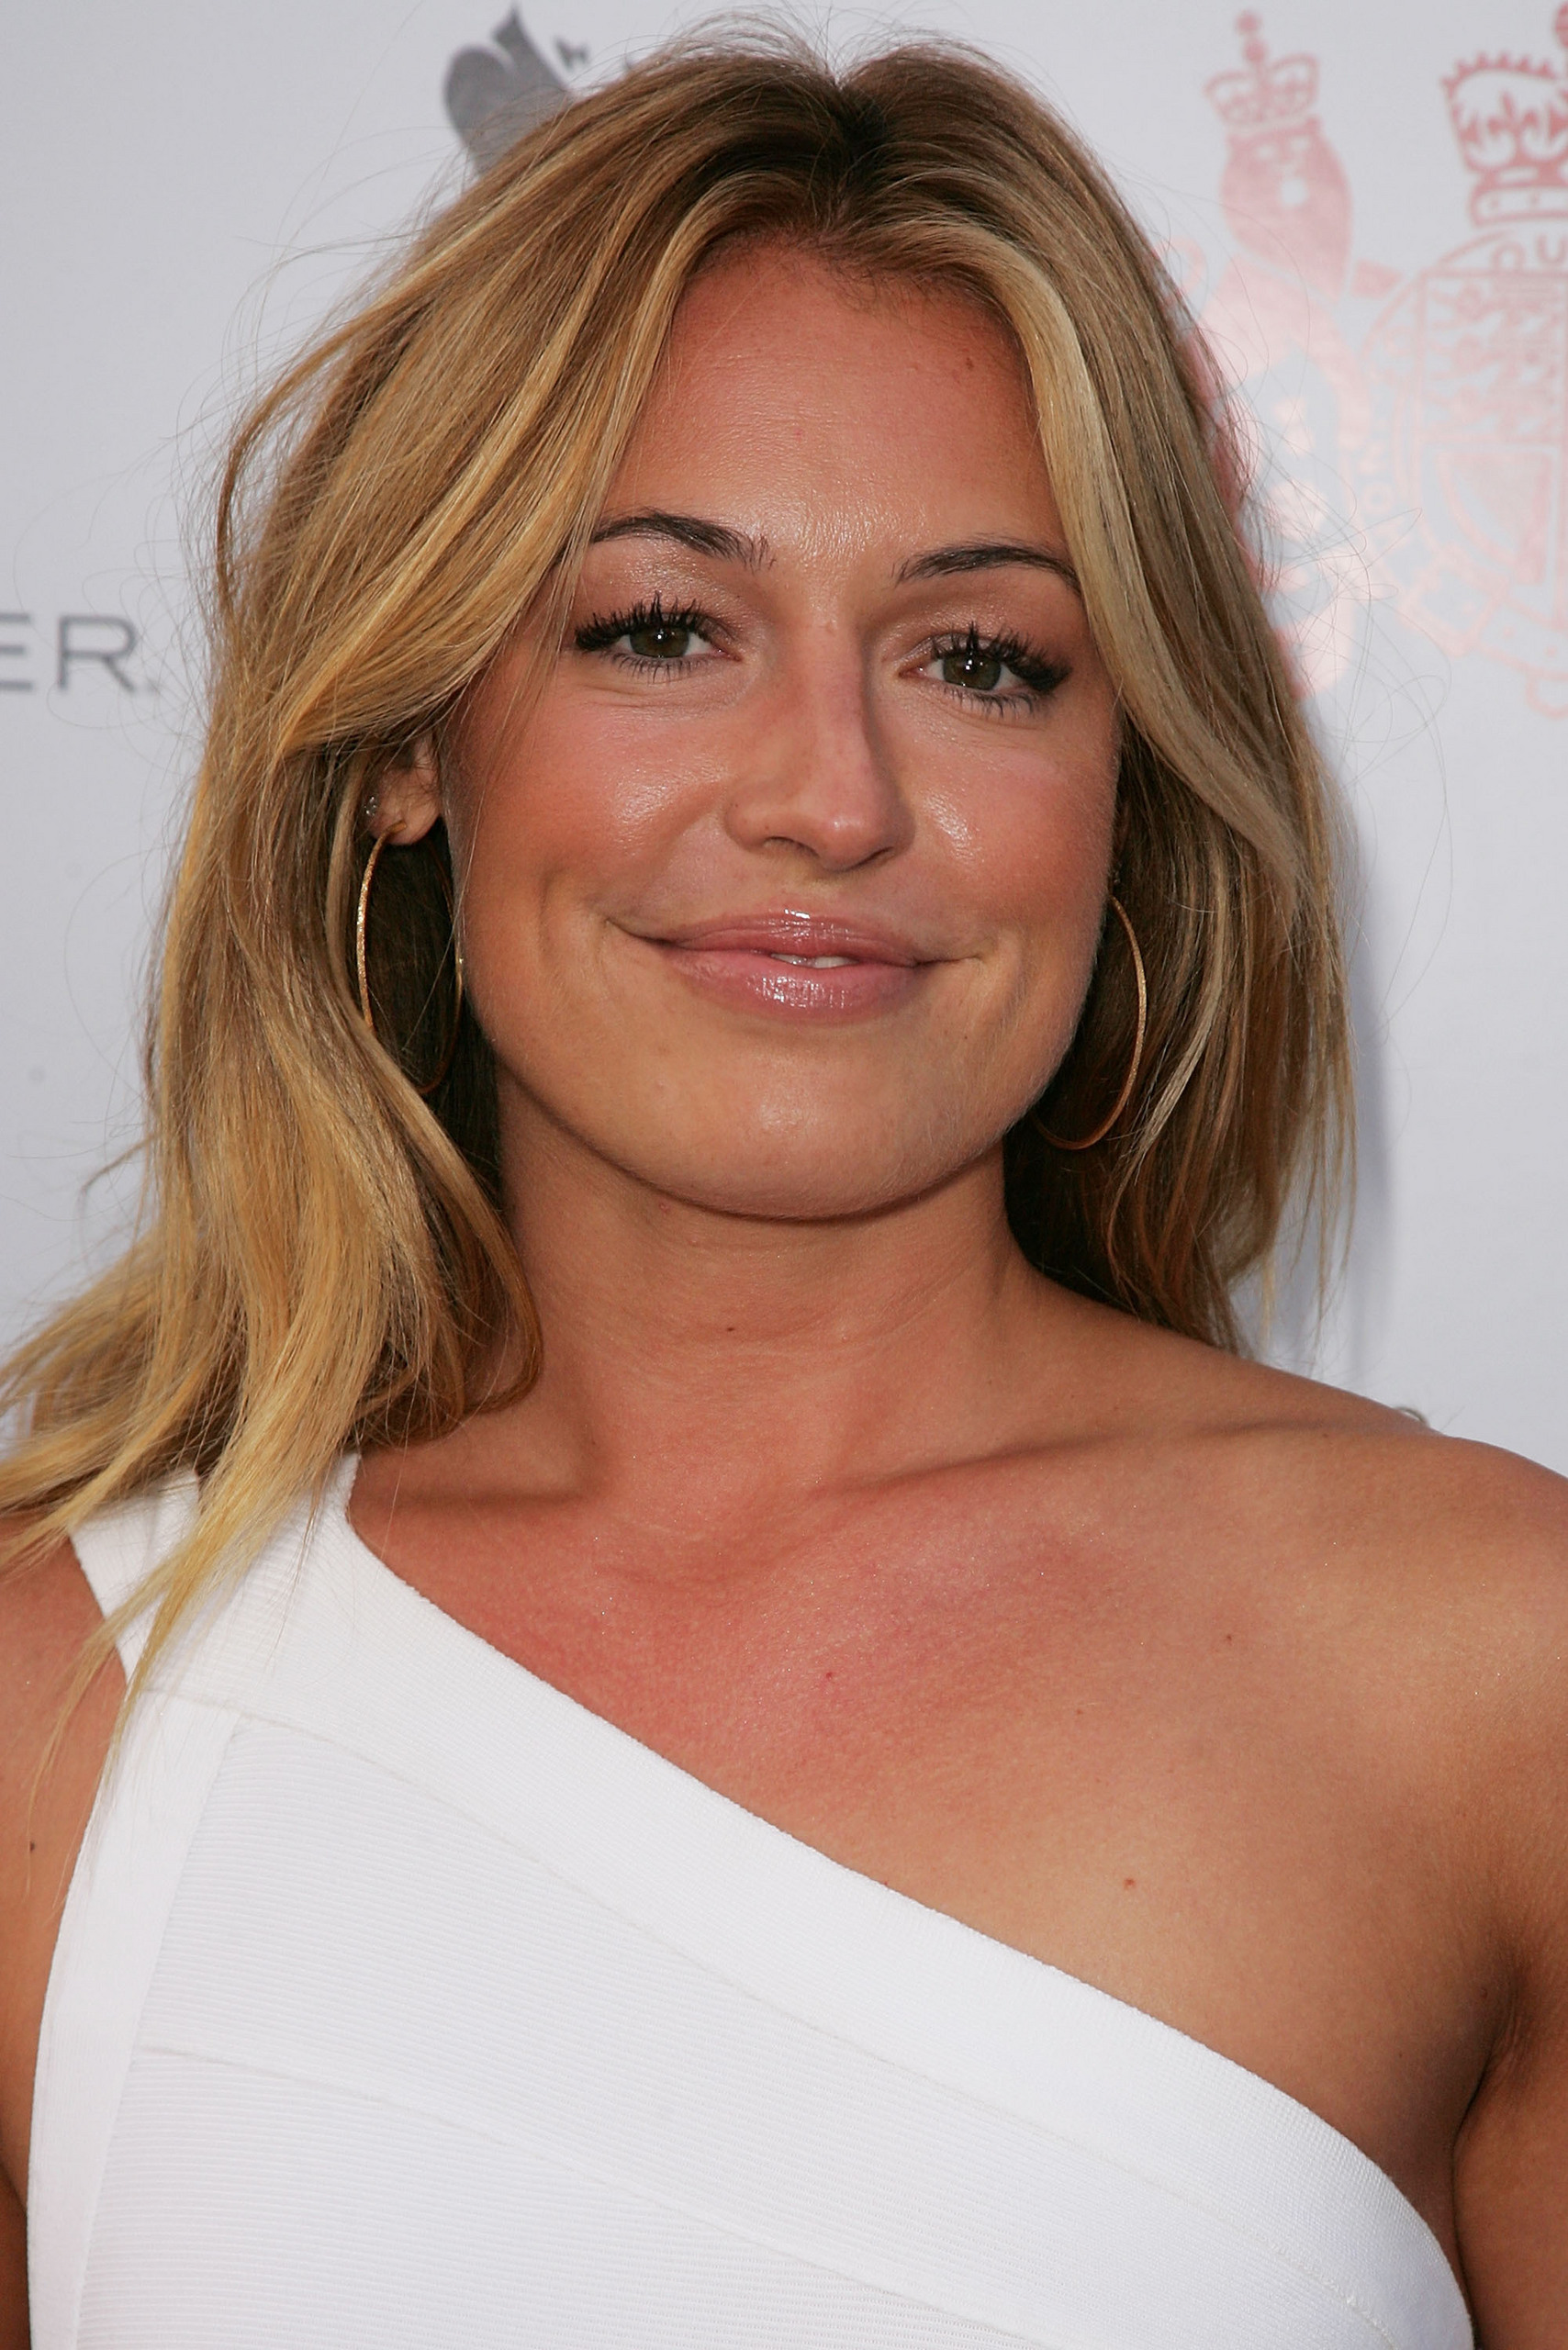 cat deeley imdb